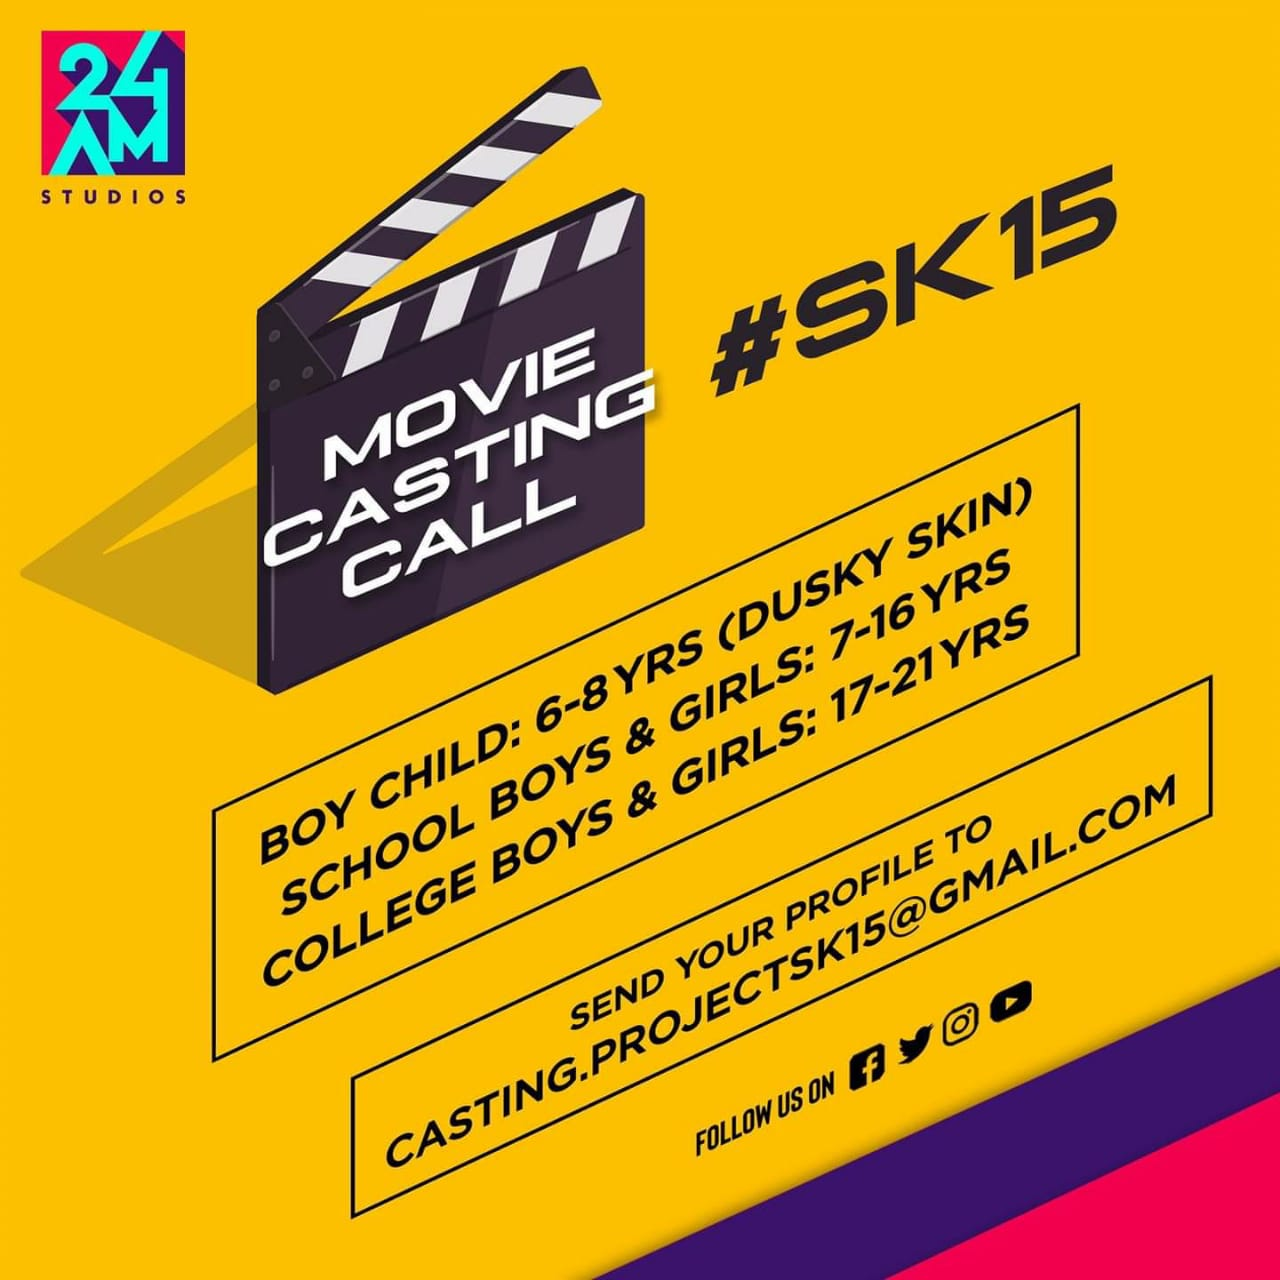 Tamil Movie Casting Call For SK15 » Star Casting Calls